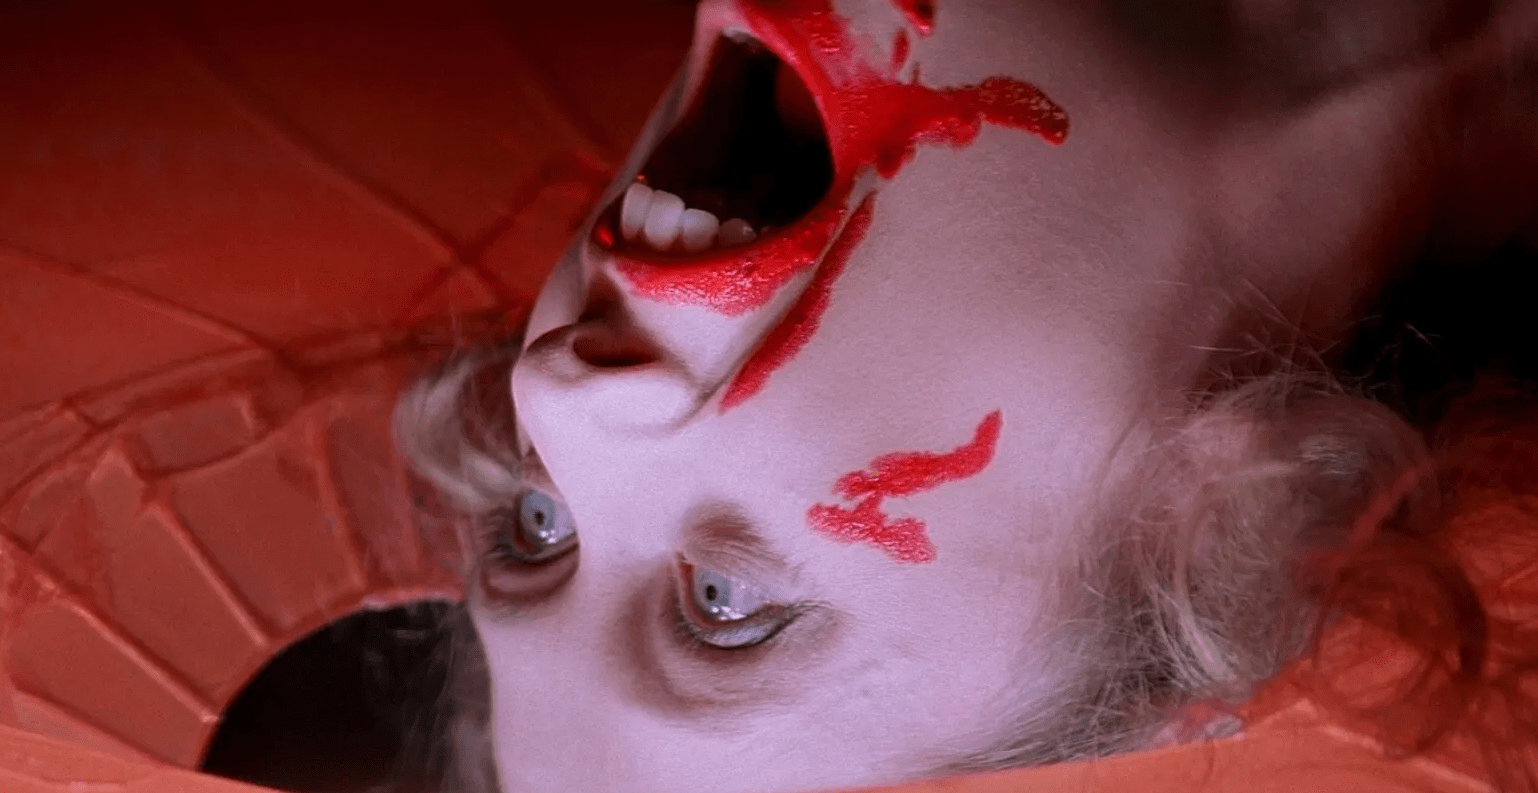 Master of the Thrill: The 6 Most Influential Dario Argento Horror Films - Bloody Disgusting